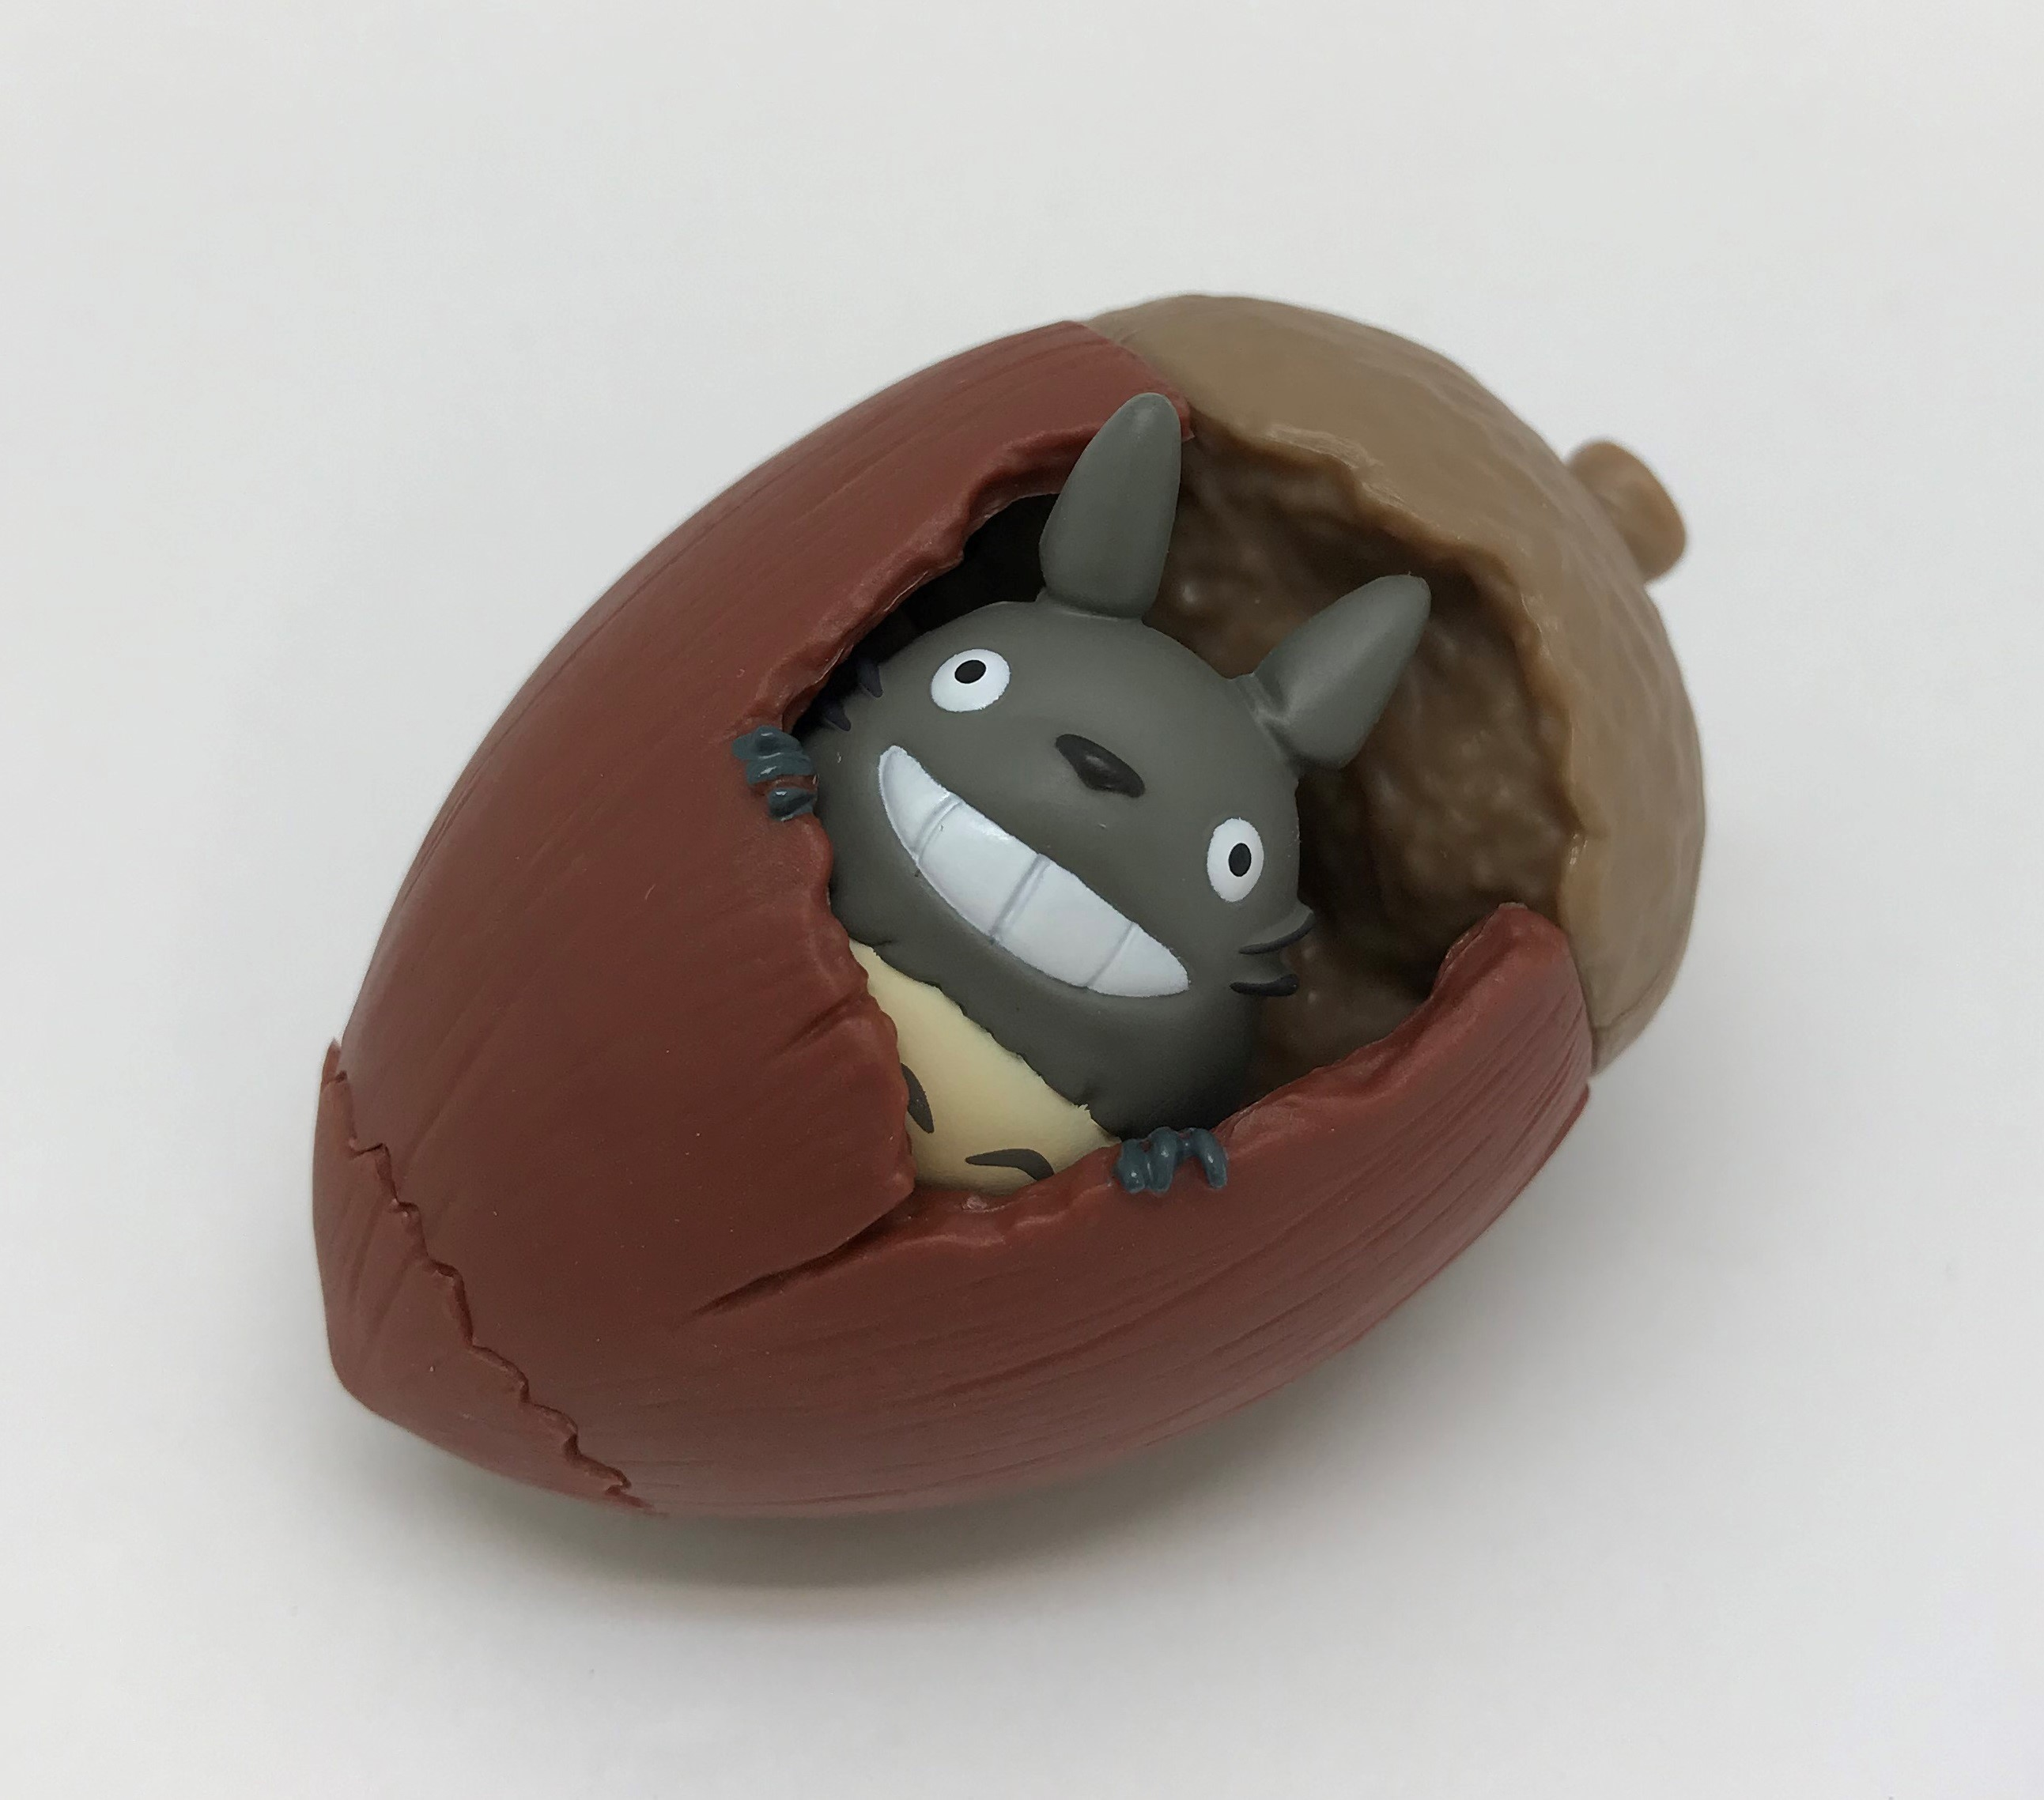 My Neighbor Totoro: Totoro and Acorn Mini 3D Puzzle